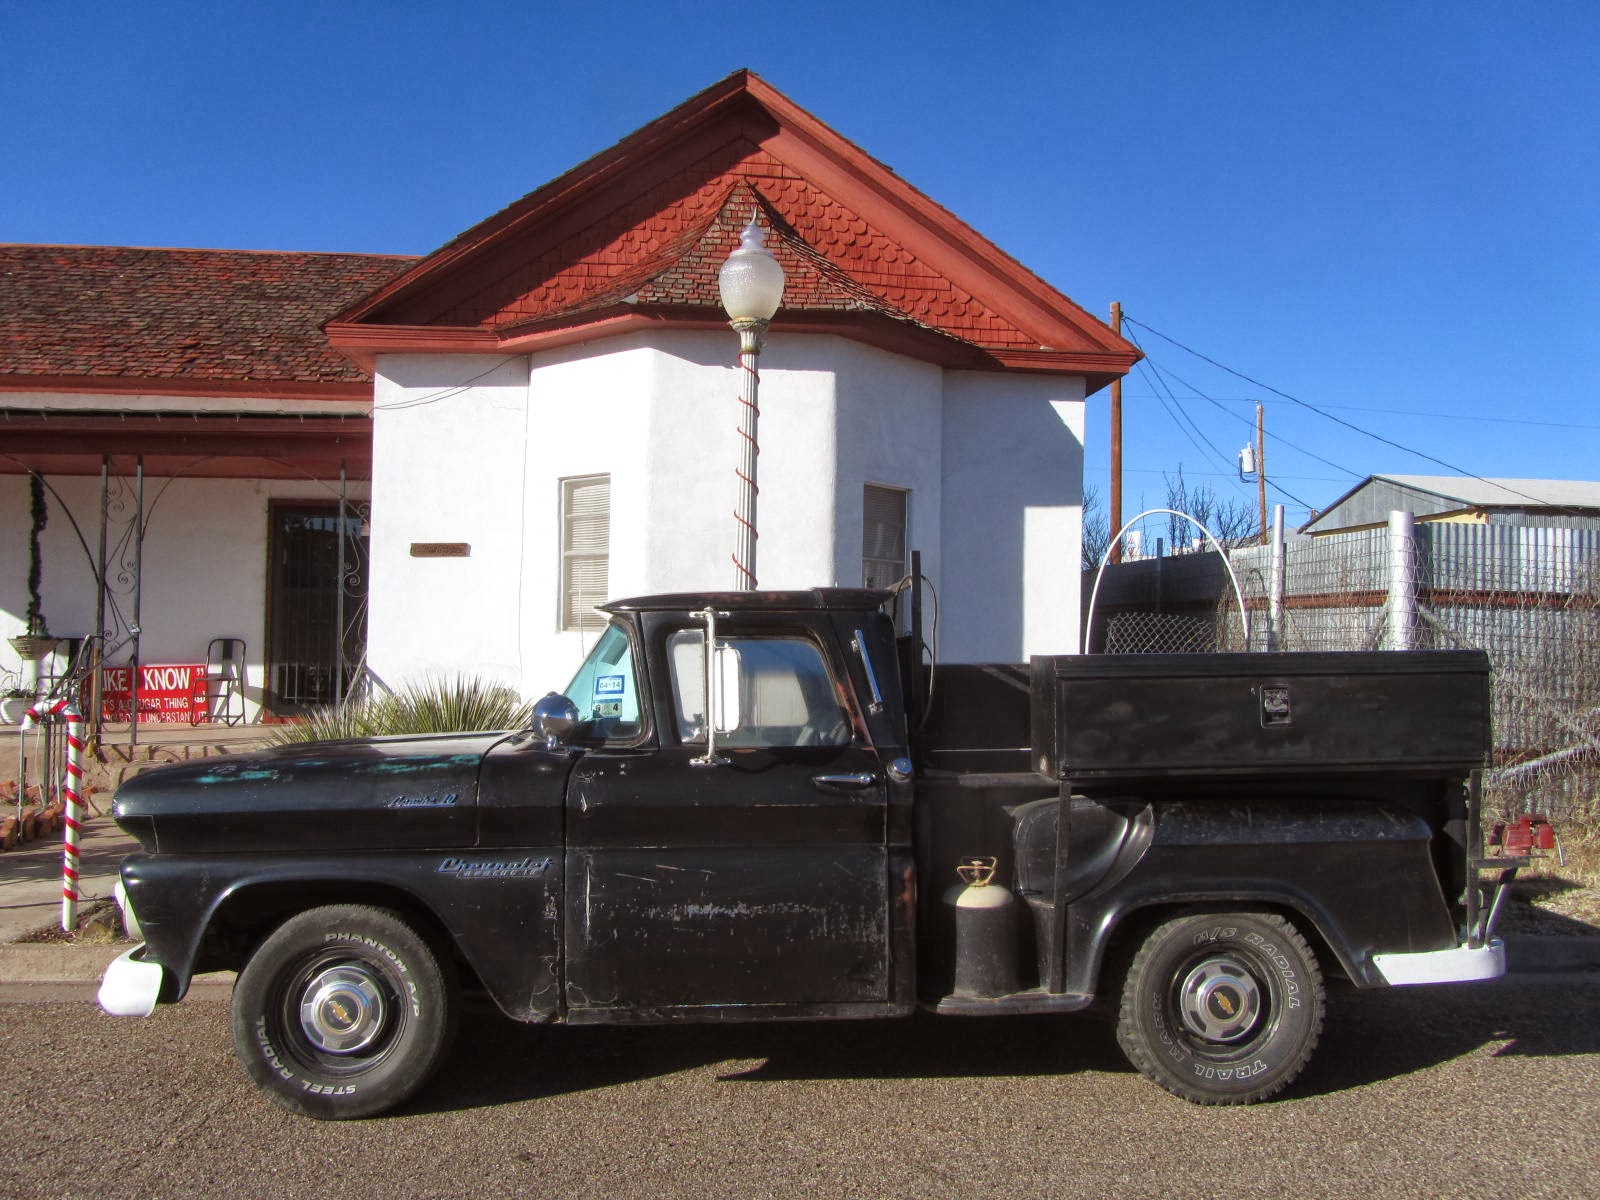 Autoliterate The Marfa Apache 1961 Chevrolet 10 Chevy Pickup Truck I Learned To Drive Standard On A 61 When Working Gh Ranch Sundre Alberta This Plumbers Has Been Job In For Half